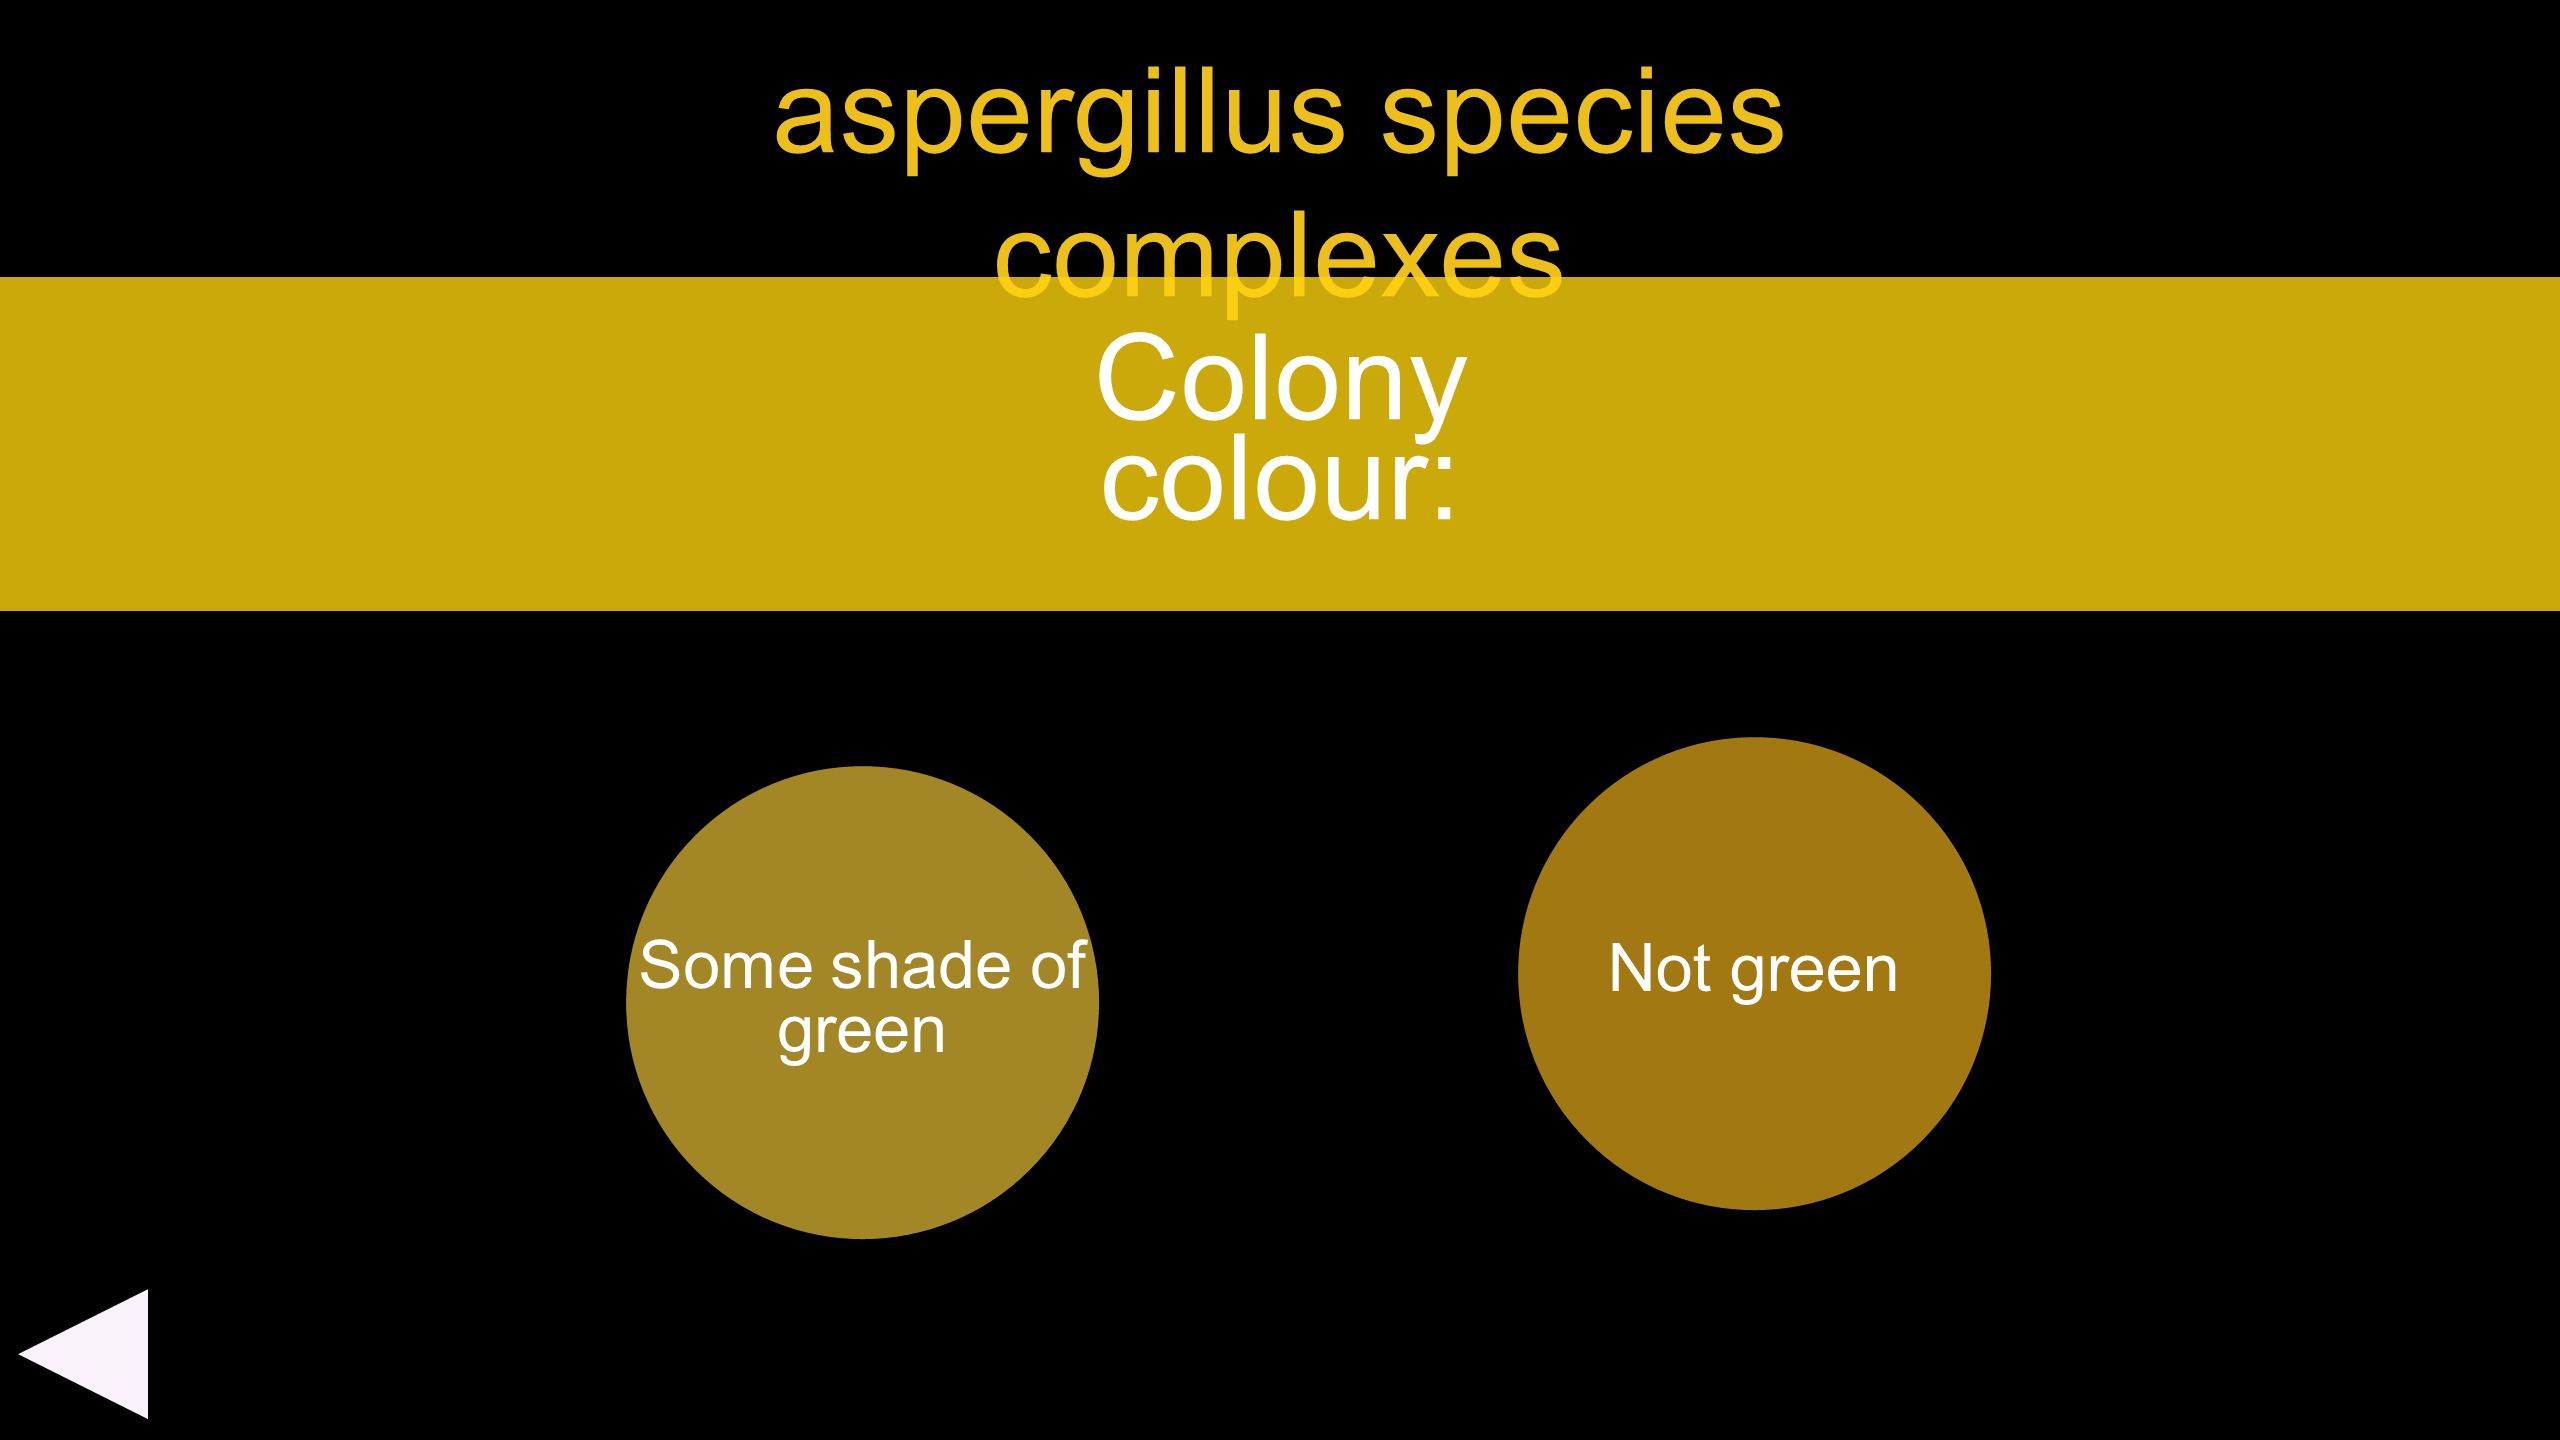 aspergillus species complexes